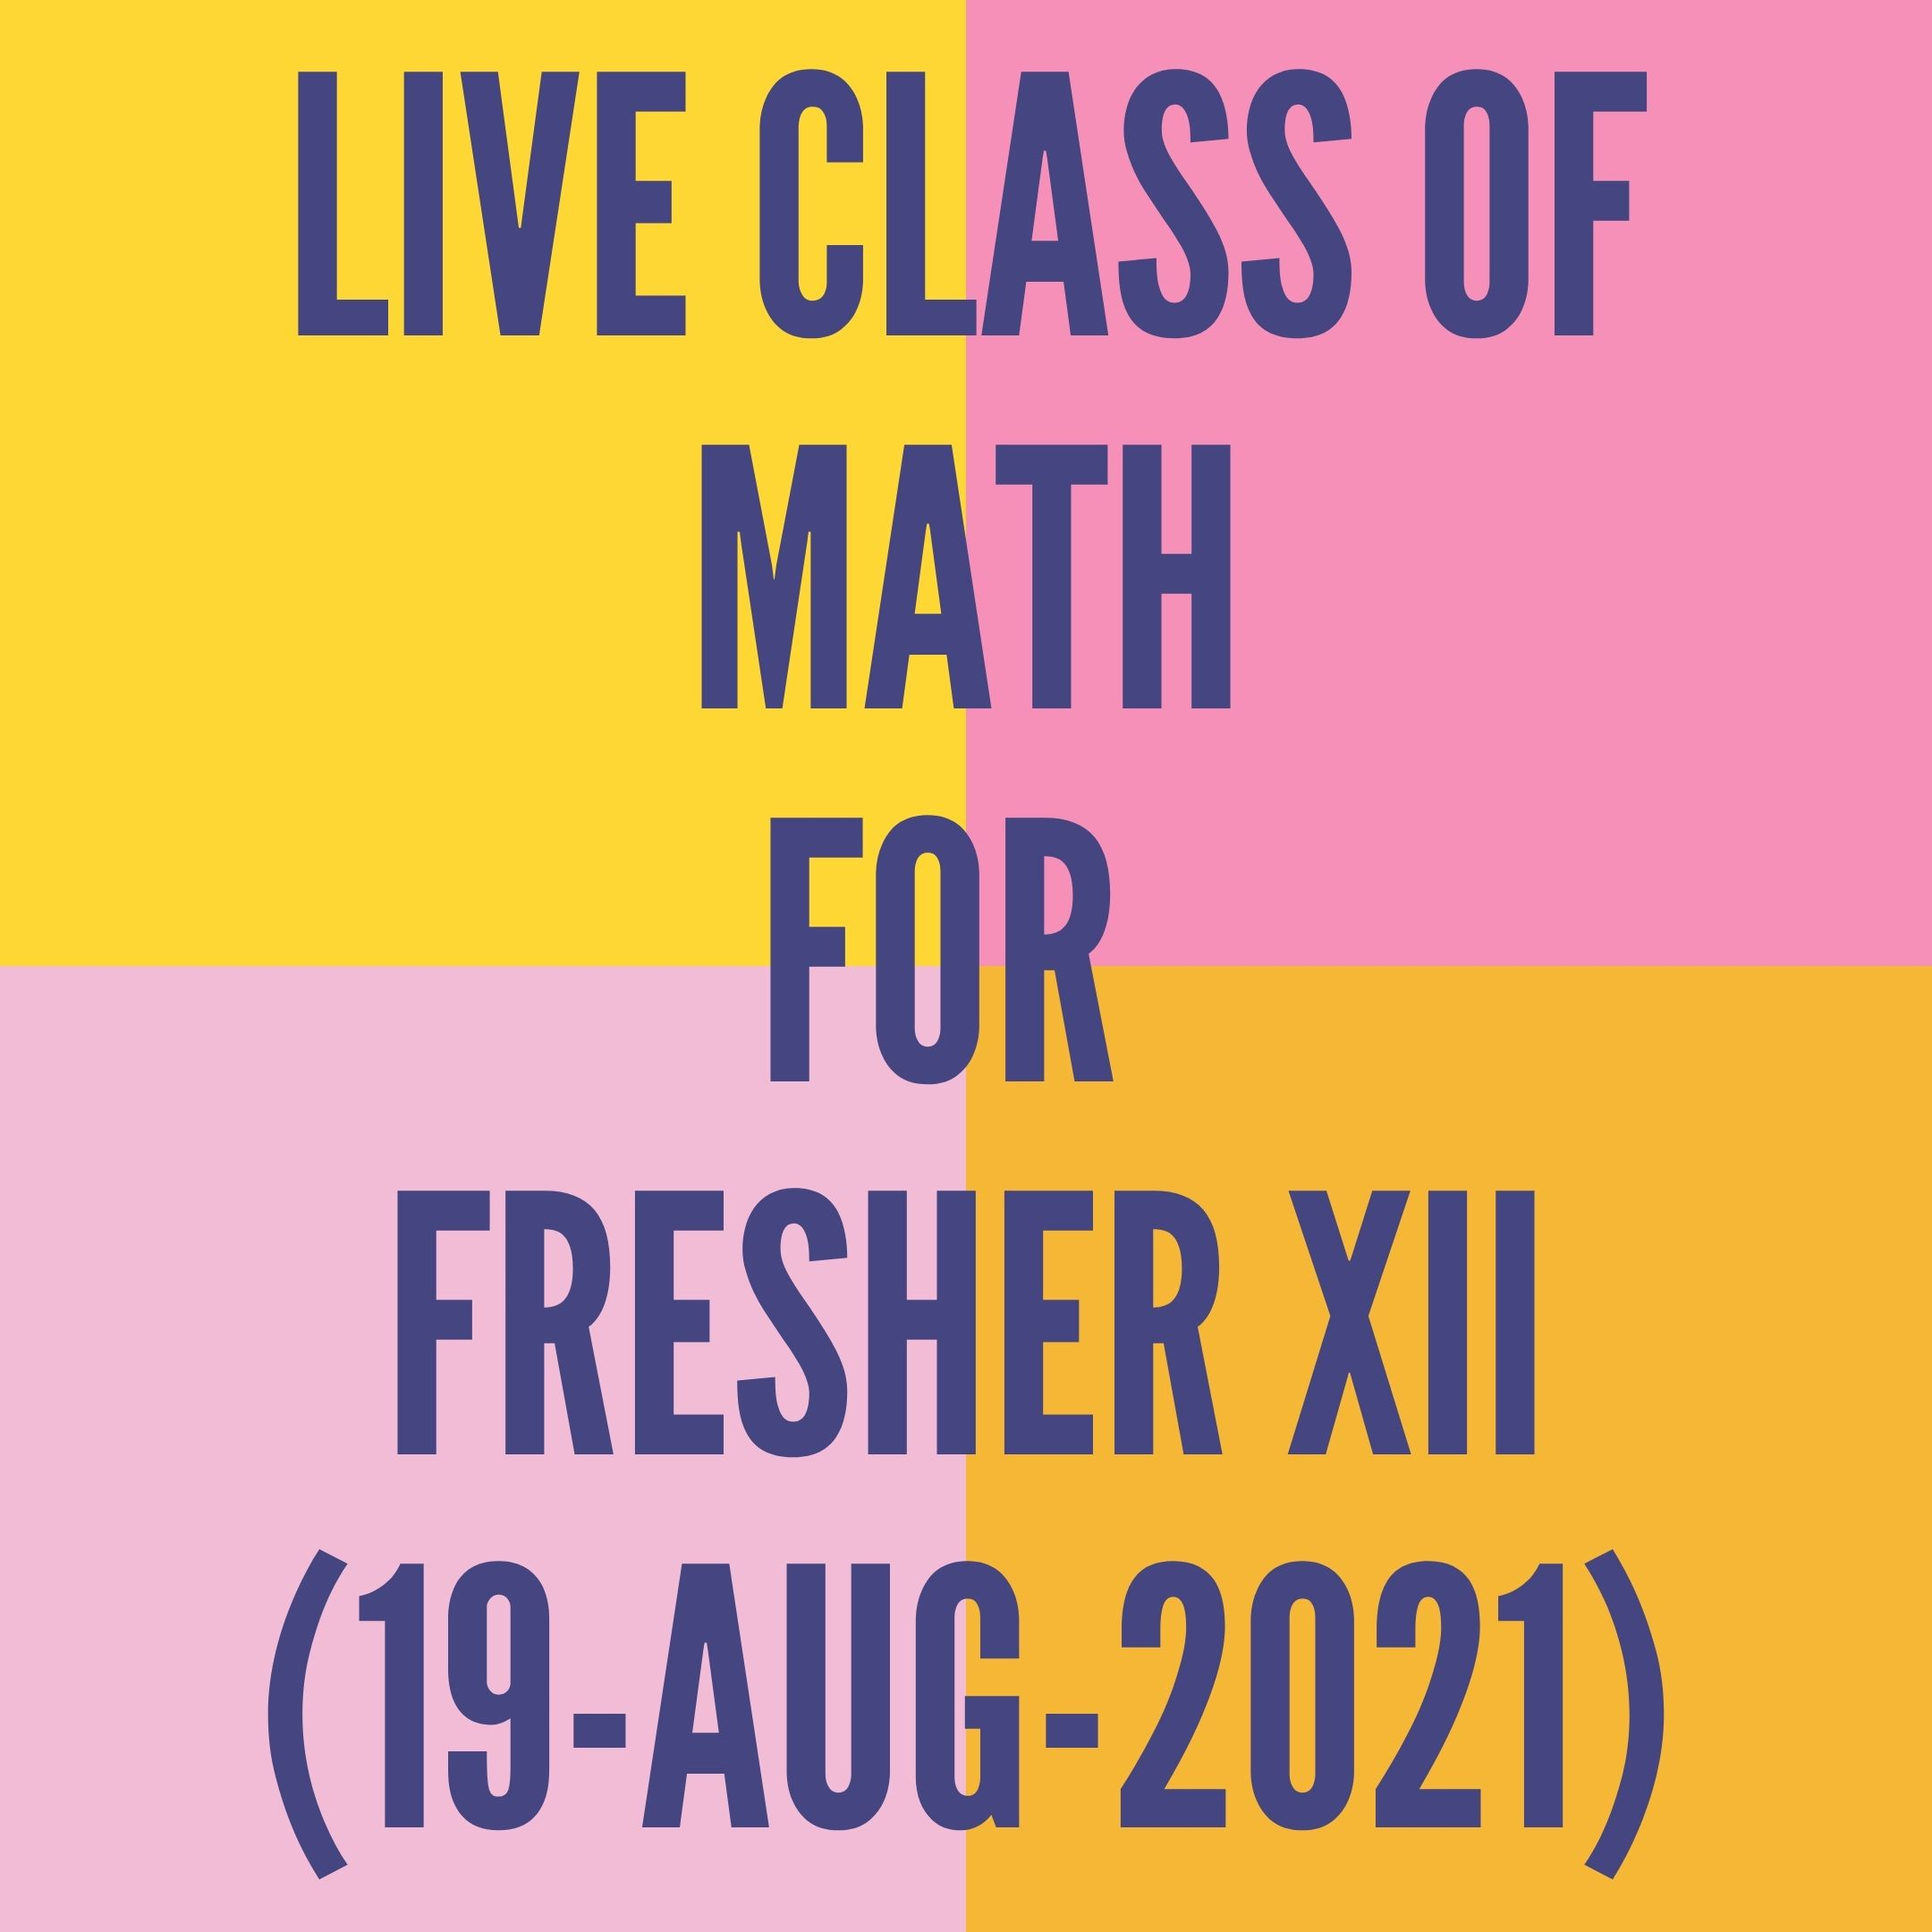 LIVE CLASS OF MATH FOR FRESHER (19-AUG-2021)